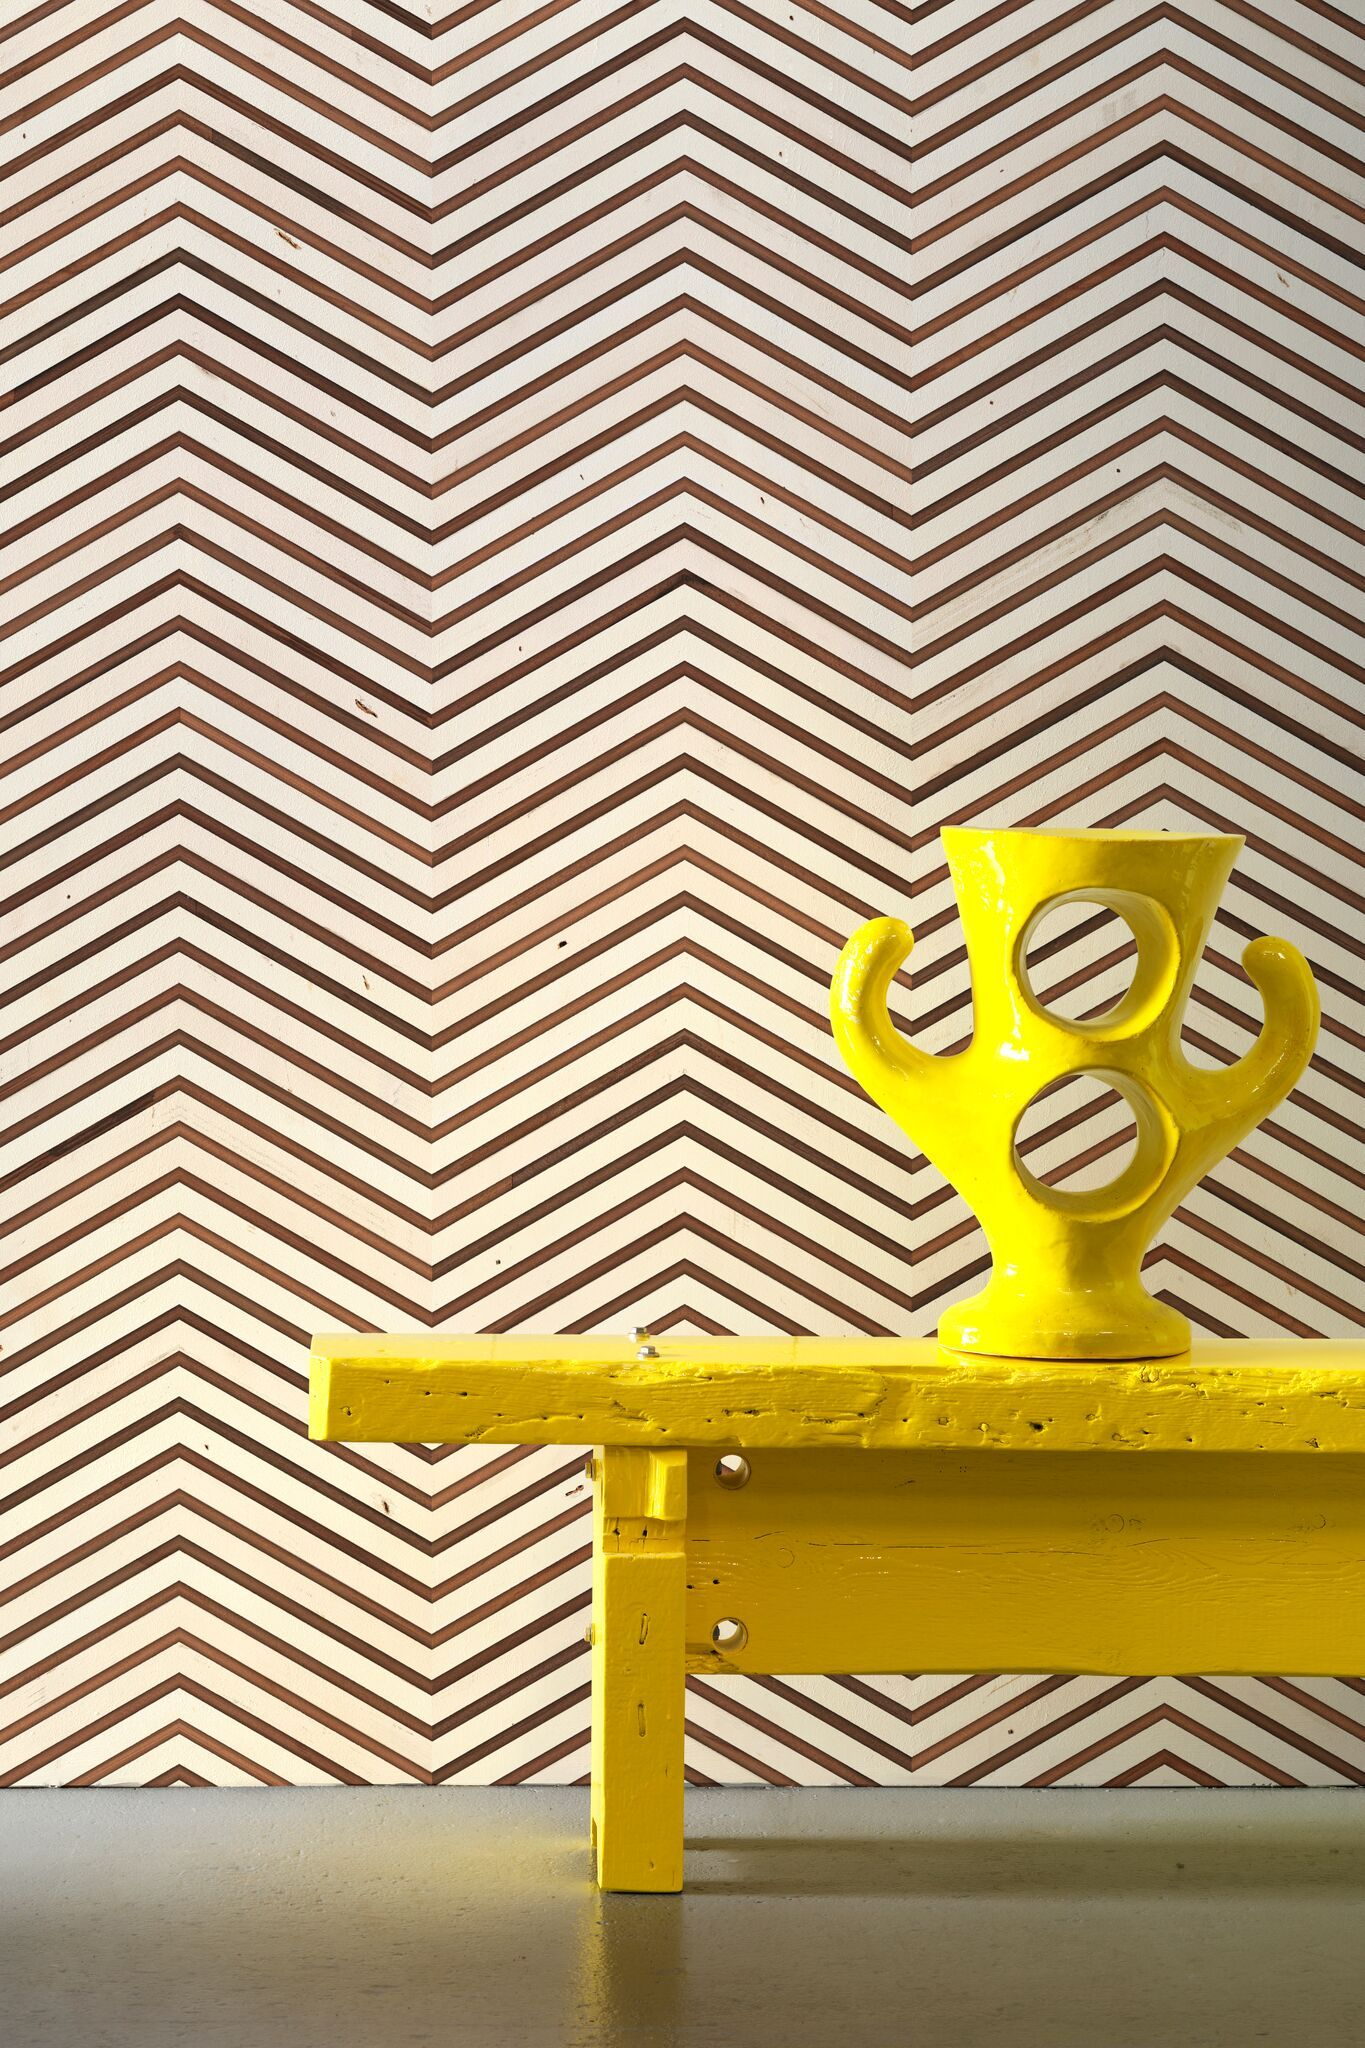 NLXL Timber Strip Wallpaper TIM-04 | Piet hein eek, Wallpaper and ...